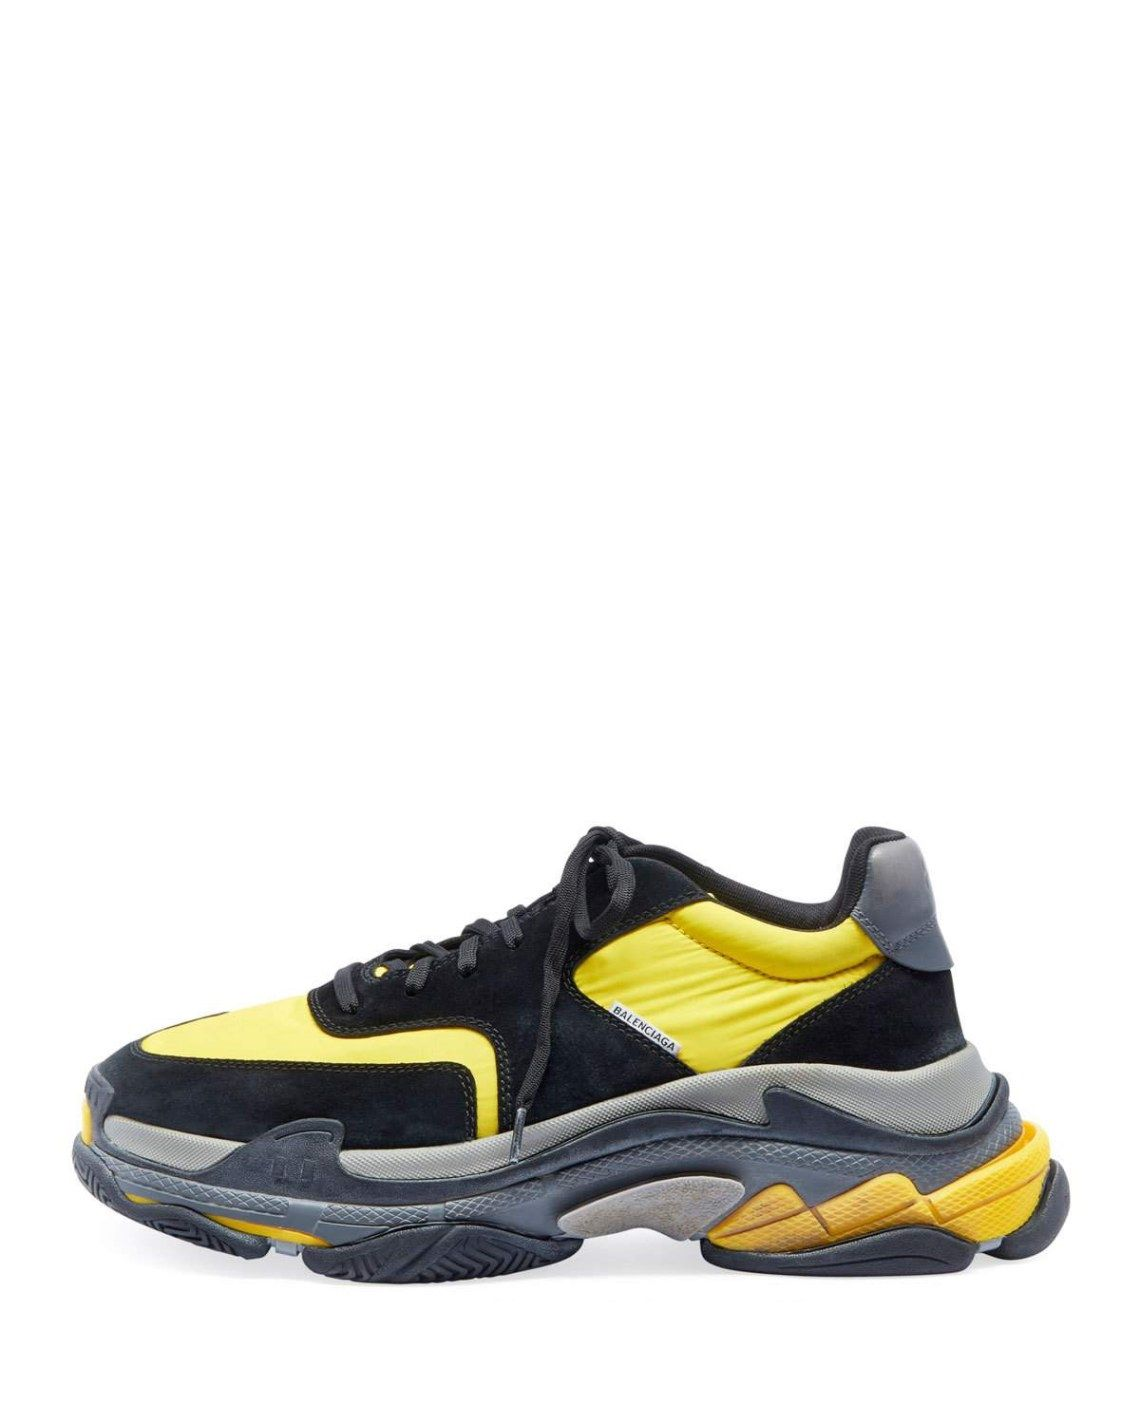 04673bec7660b Are you searching for more info on sneakers  Then simply simply click right  here to